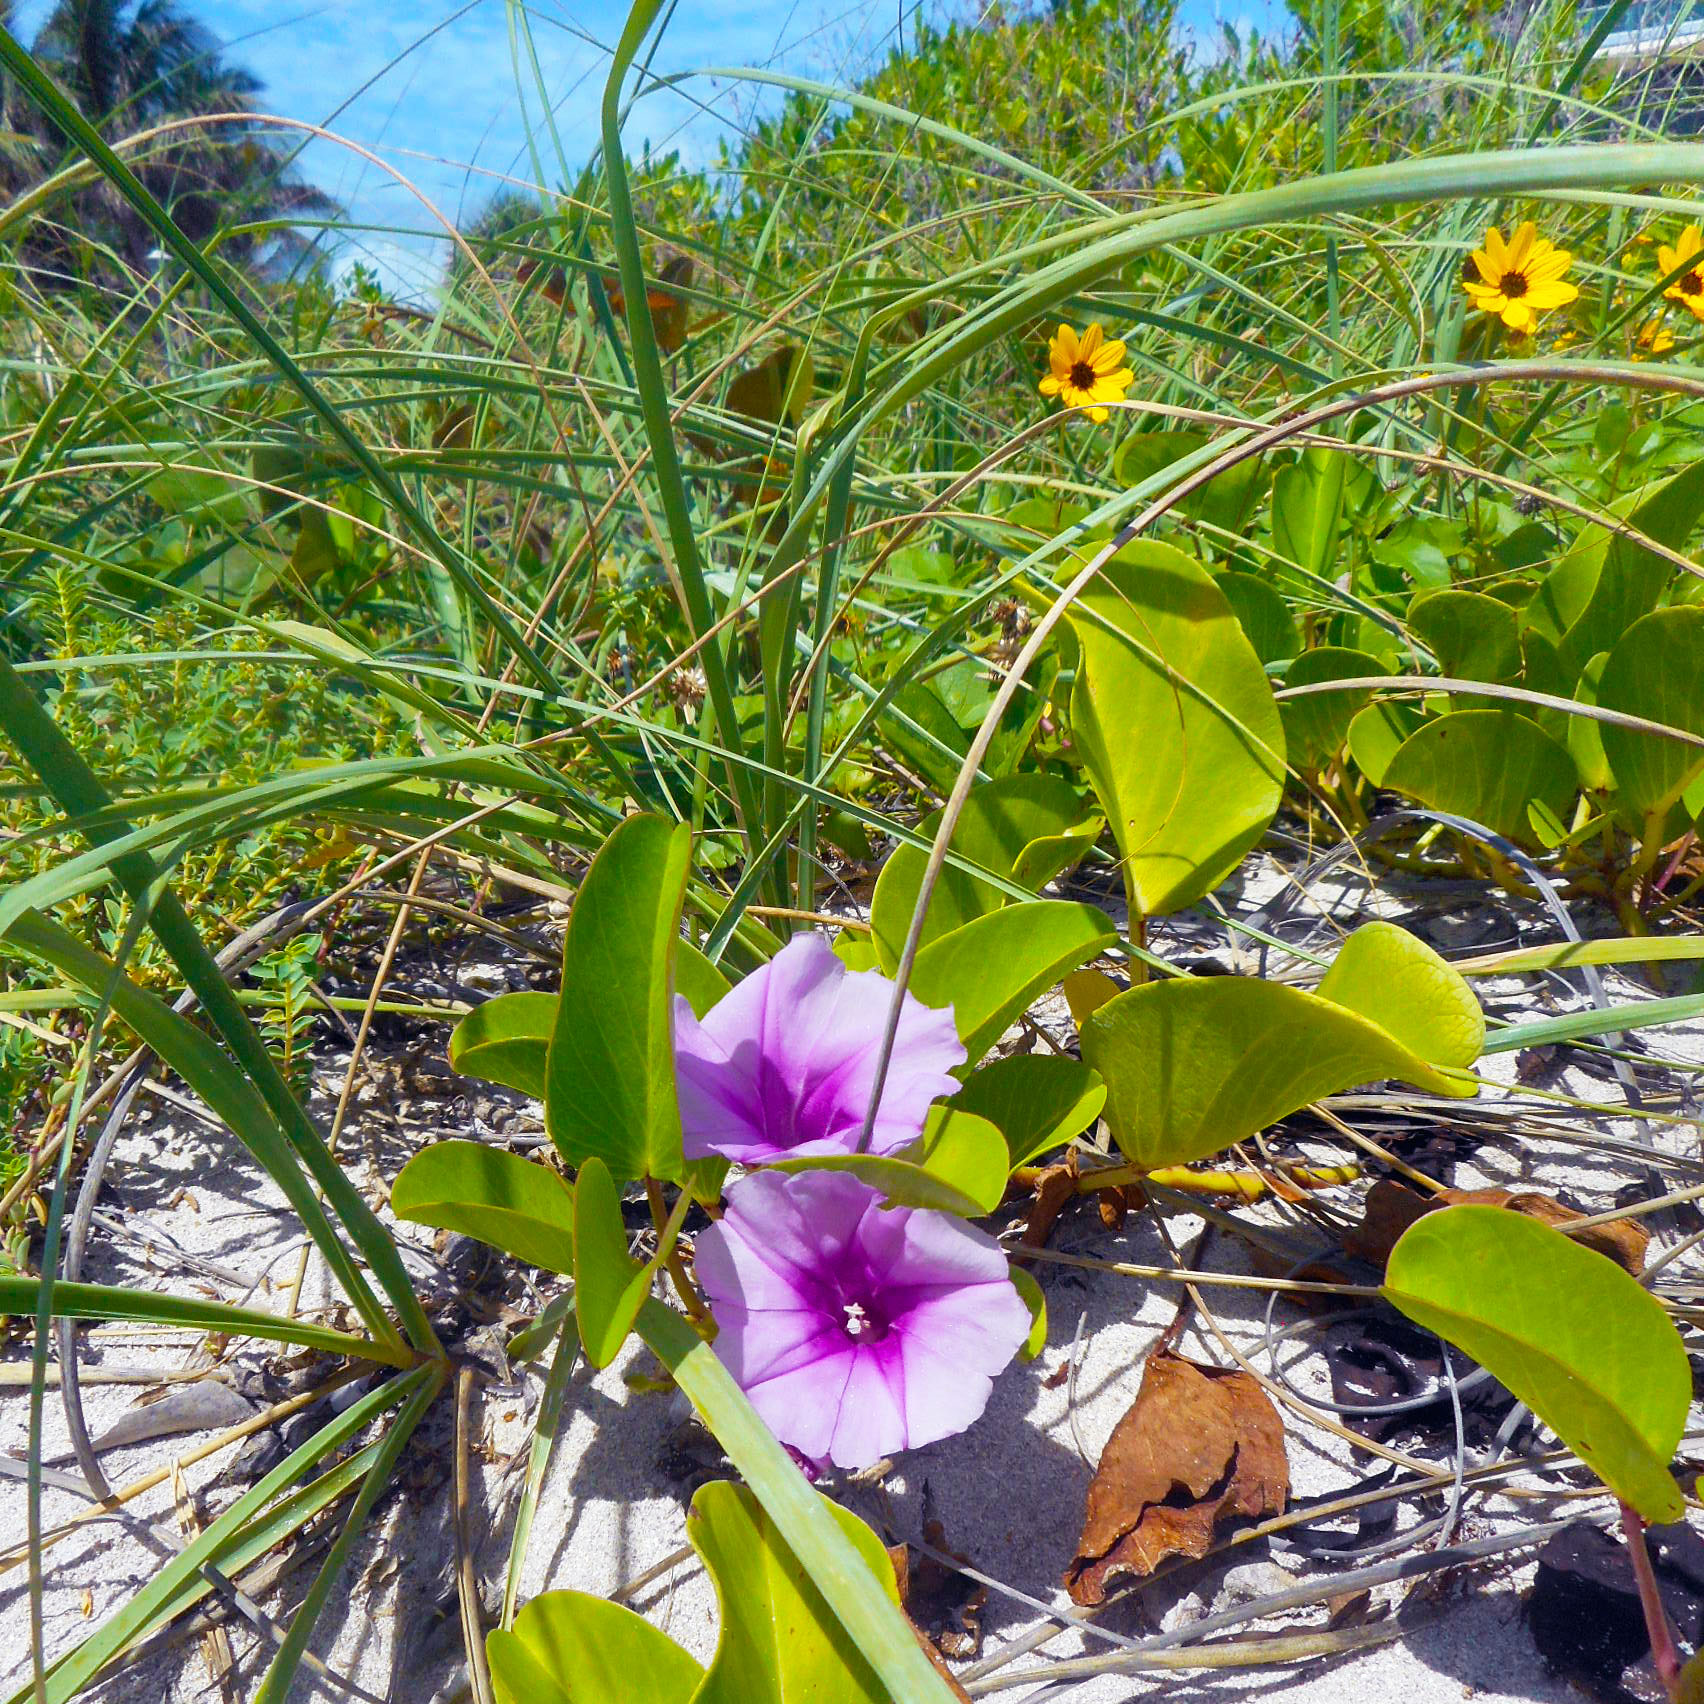 Filemiami Beach Sand Dune Flora Yellow And Purple Flowersg